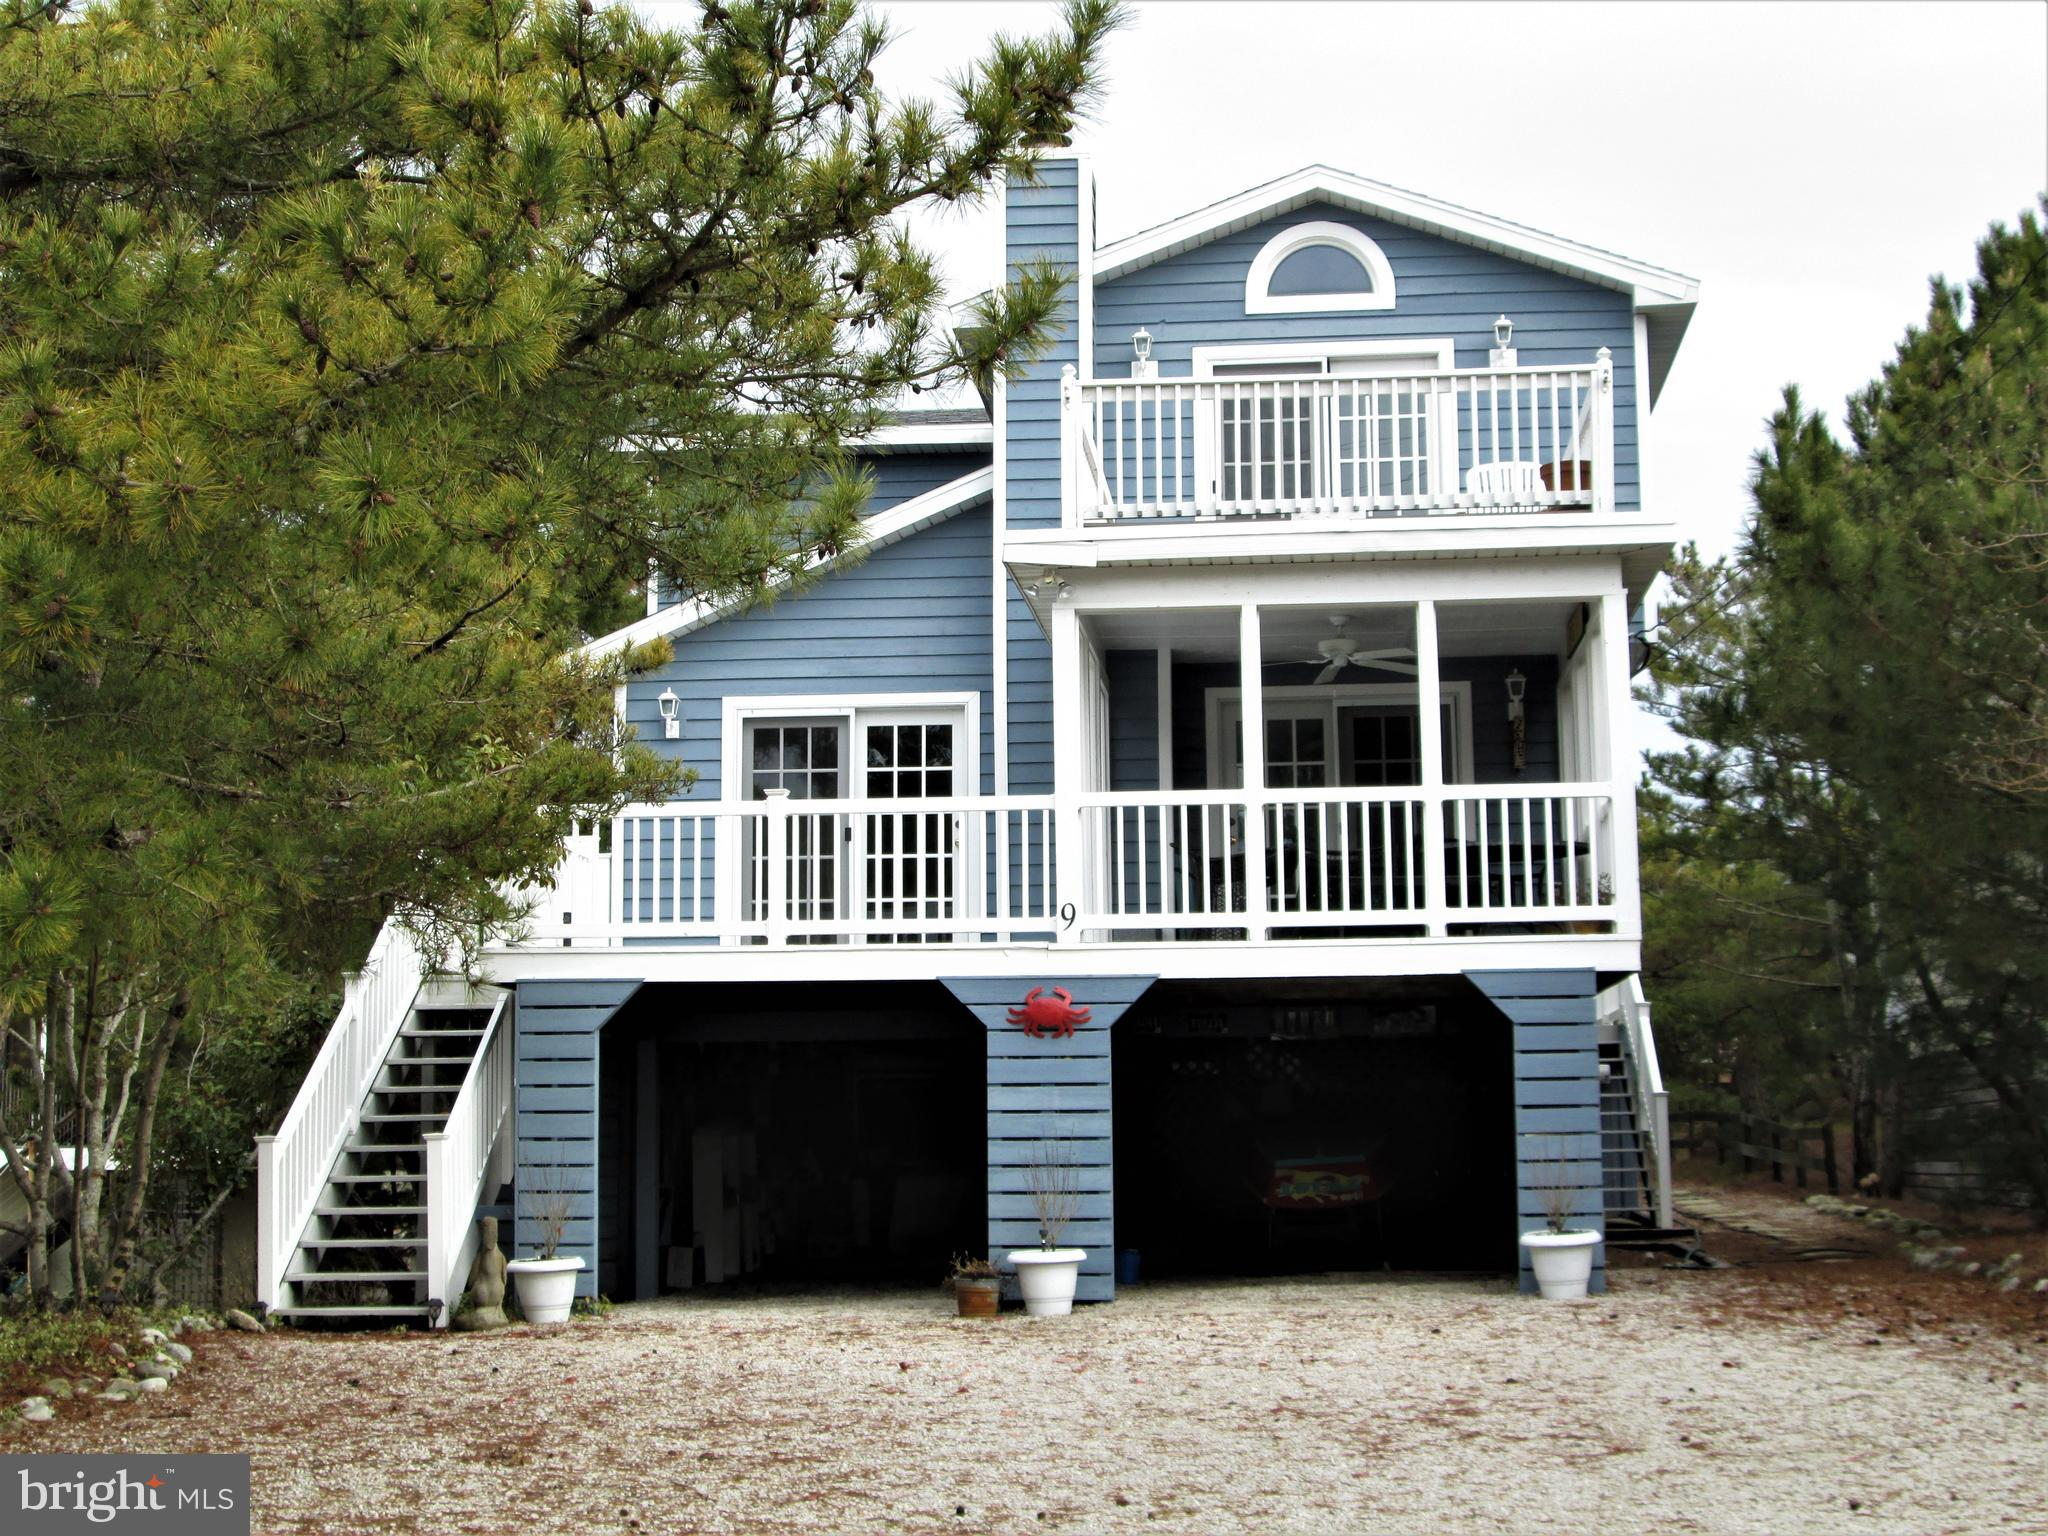 If location is near the top of your list of importance then 9 East Farmington Street will be very difficult to beat.  Not only is it located in the wonderful town of Fenwick Island but it is also a stones throw to the lifeguarded beach within the town limits.  This remodeled home offers cozy beach living with 4 Br. and 2.5 Ba. on an extra large lot.  There is a wonderful sitting at the rear of the house (having its own heat and a/c) which is perfect for a quiet place to read a book or enjoy the conversations after a day at the beach.  The main bedroom is upstairs and has two open decks.  The one over looking Farmington Street does have an ocean view. The smaller rear deck is a quiet spot that will catch that afternoon sun.  Easy to show and see.